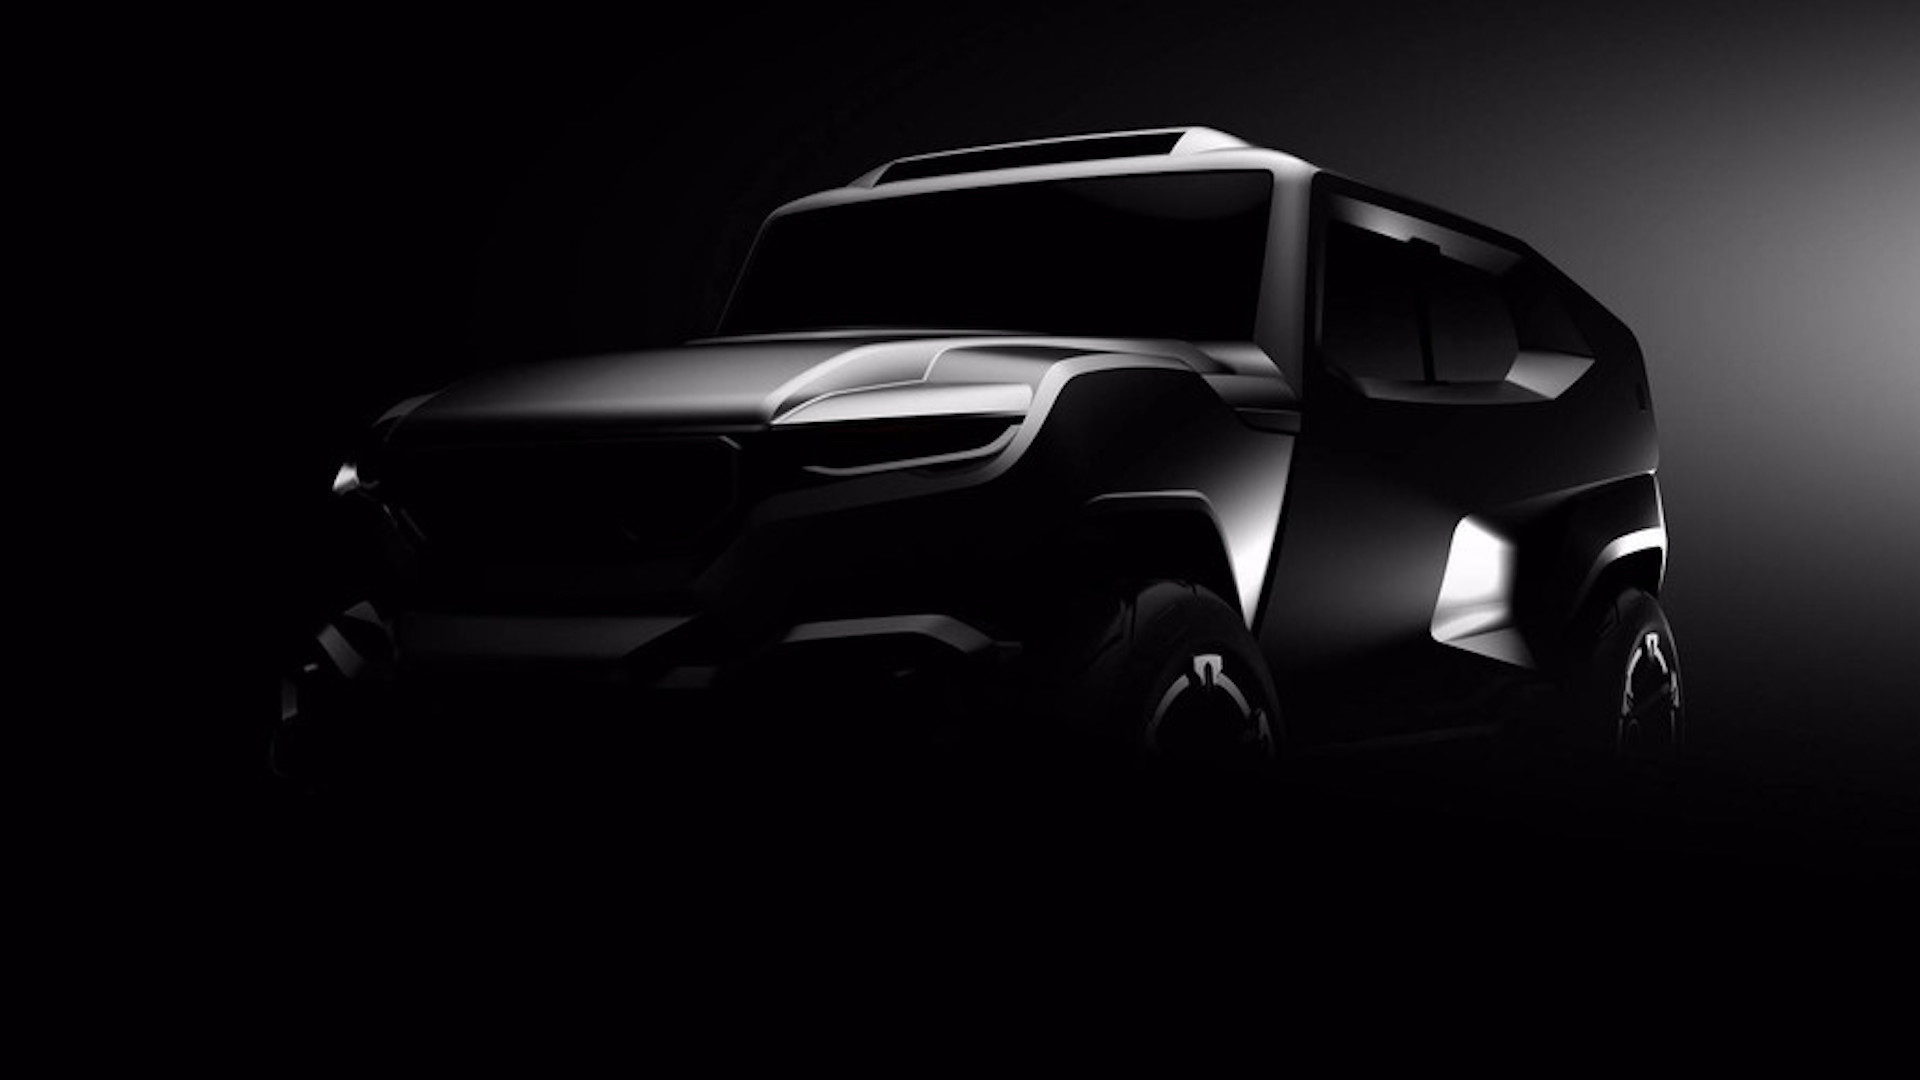 Teaser for Rezvani SUV debuting in 2017